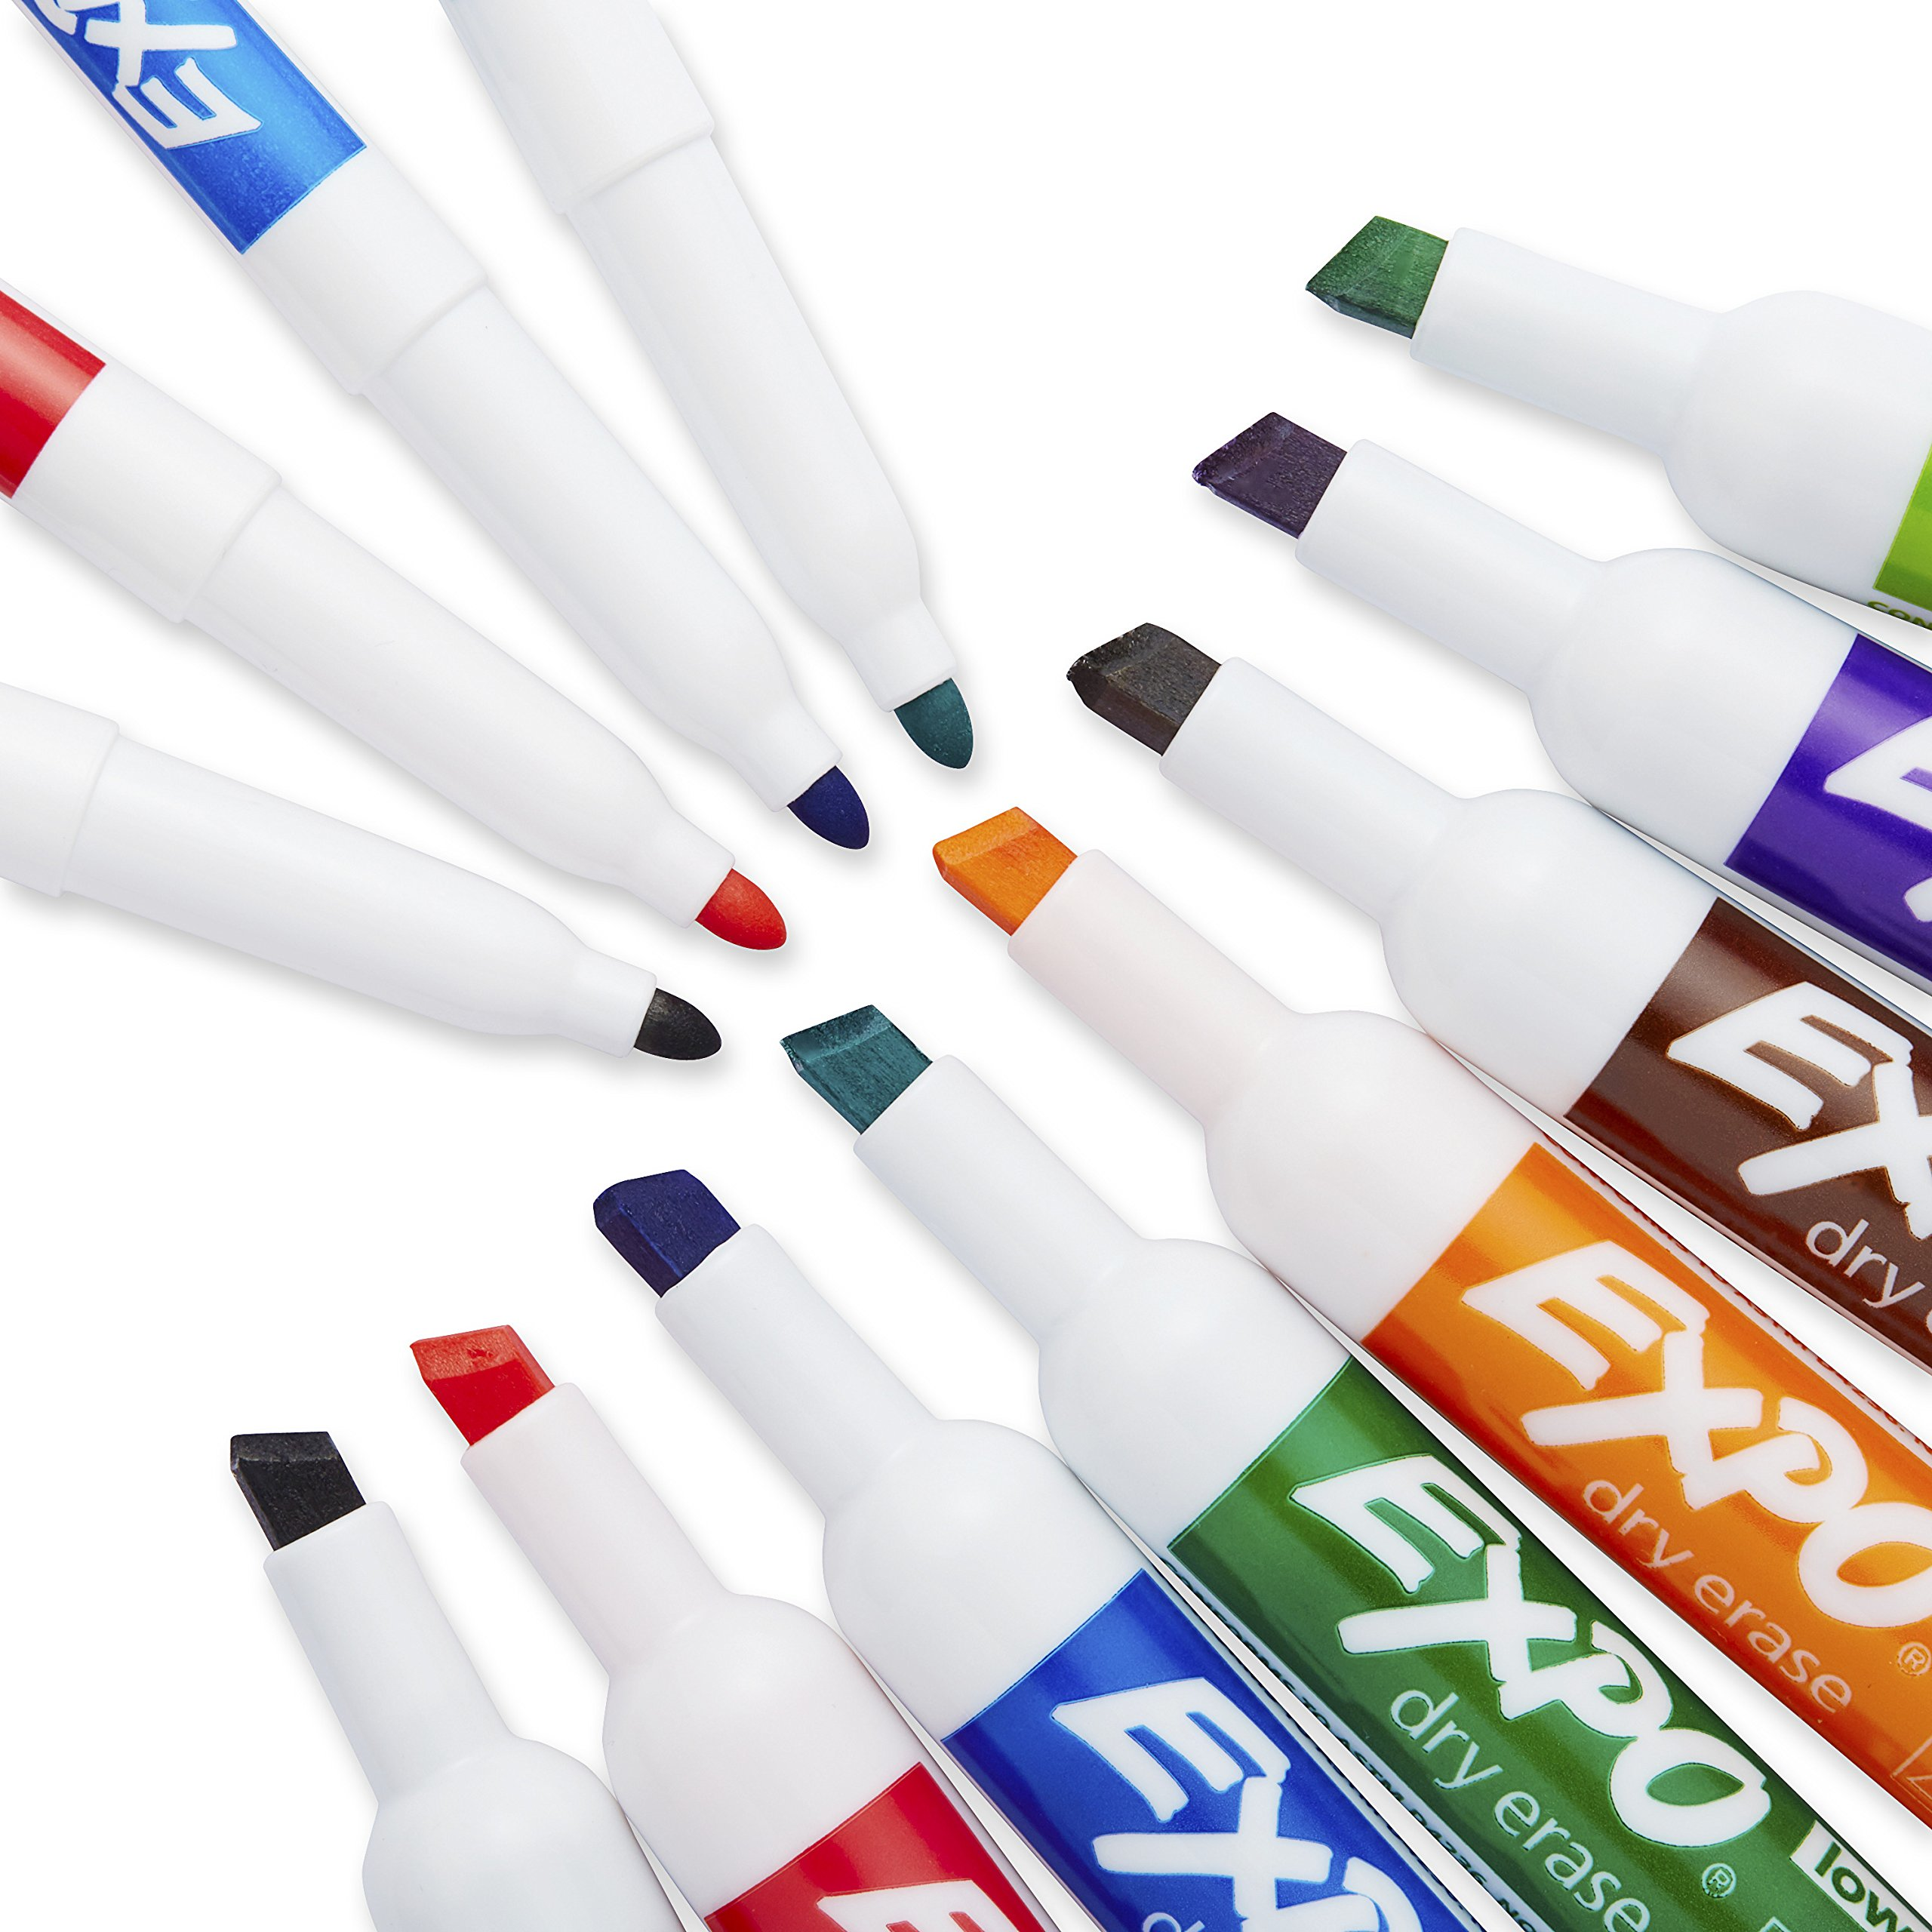 EXPO 80054 Low-Odor Dry Erase Markers, Chisel Tip, Assorted Colors, 15-Piece Set by Expo (Image #4)